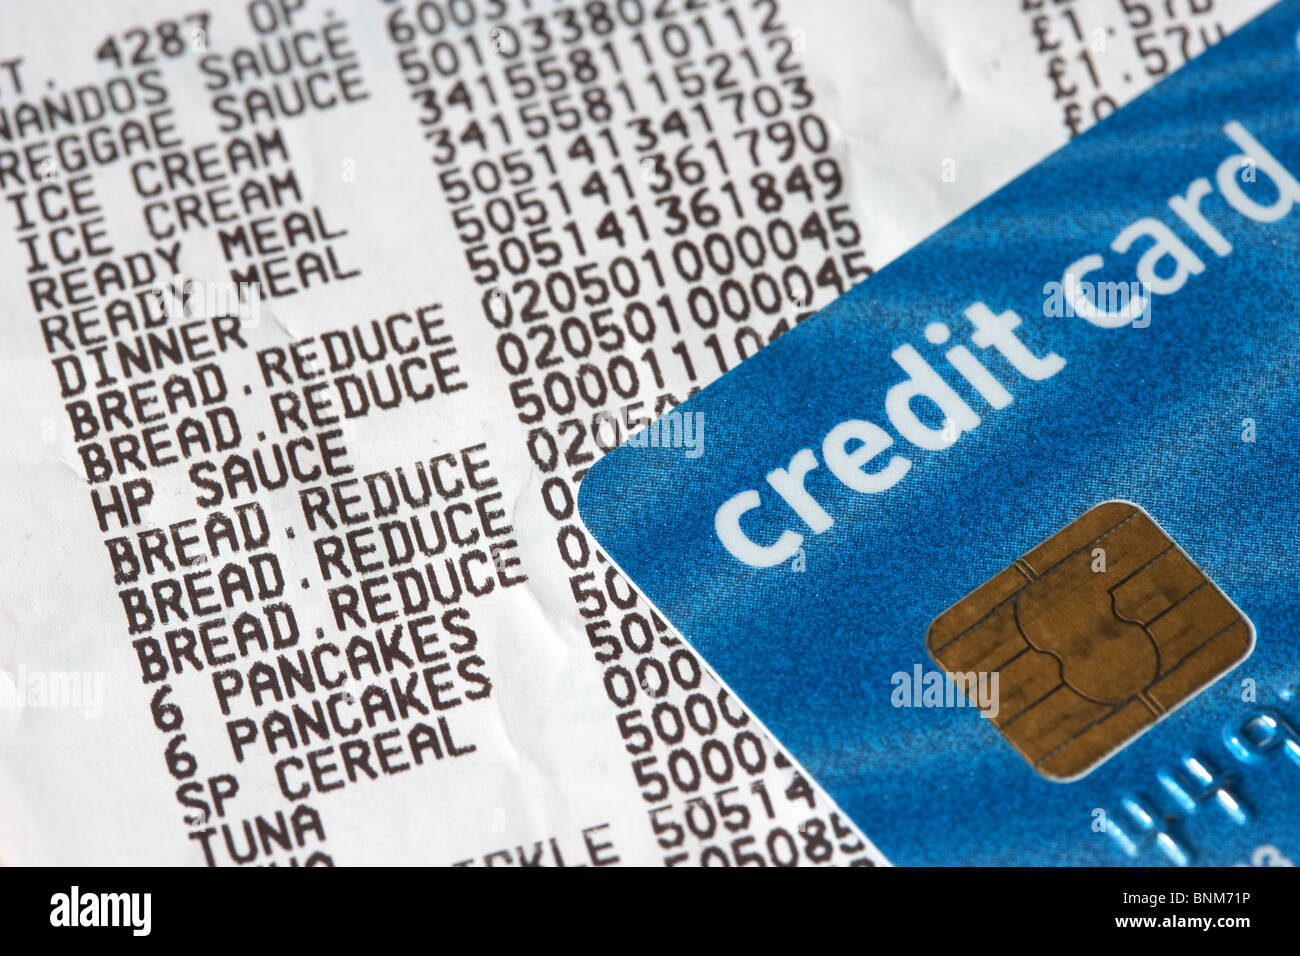 supermarket till receipt showing reduced items and credit card with prices - Stock Image